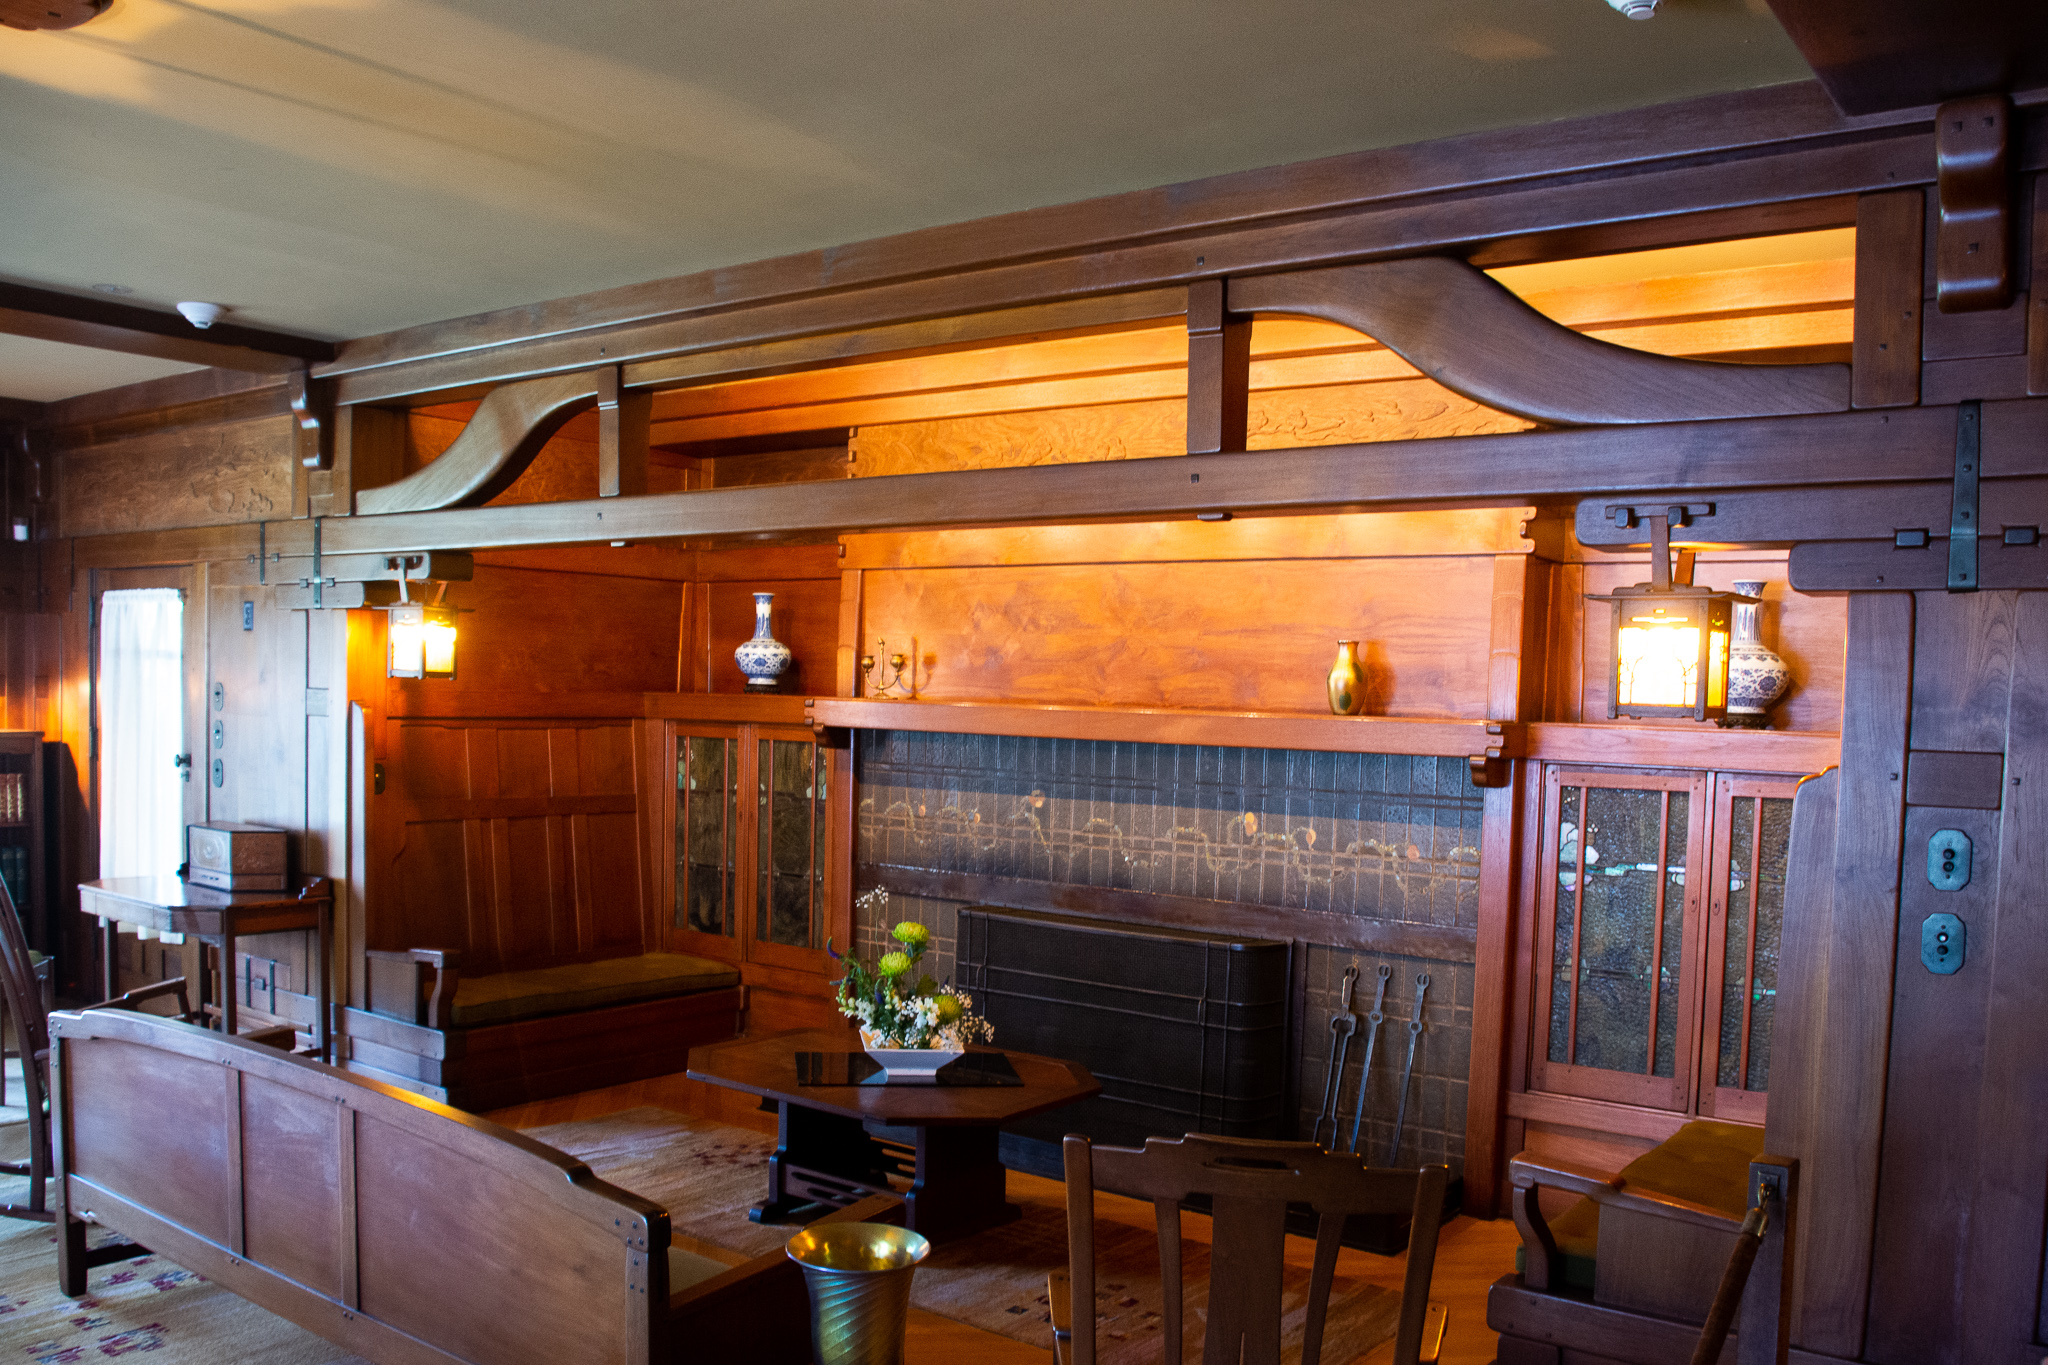 Michael_Buss_Architect_Gamble-House_tour